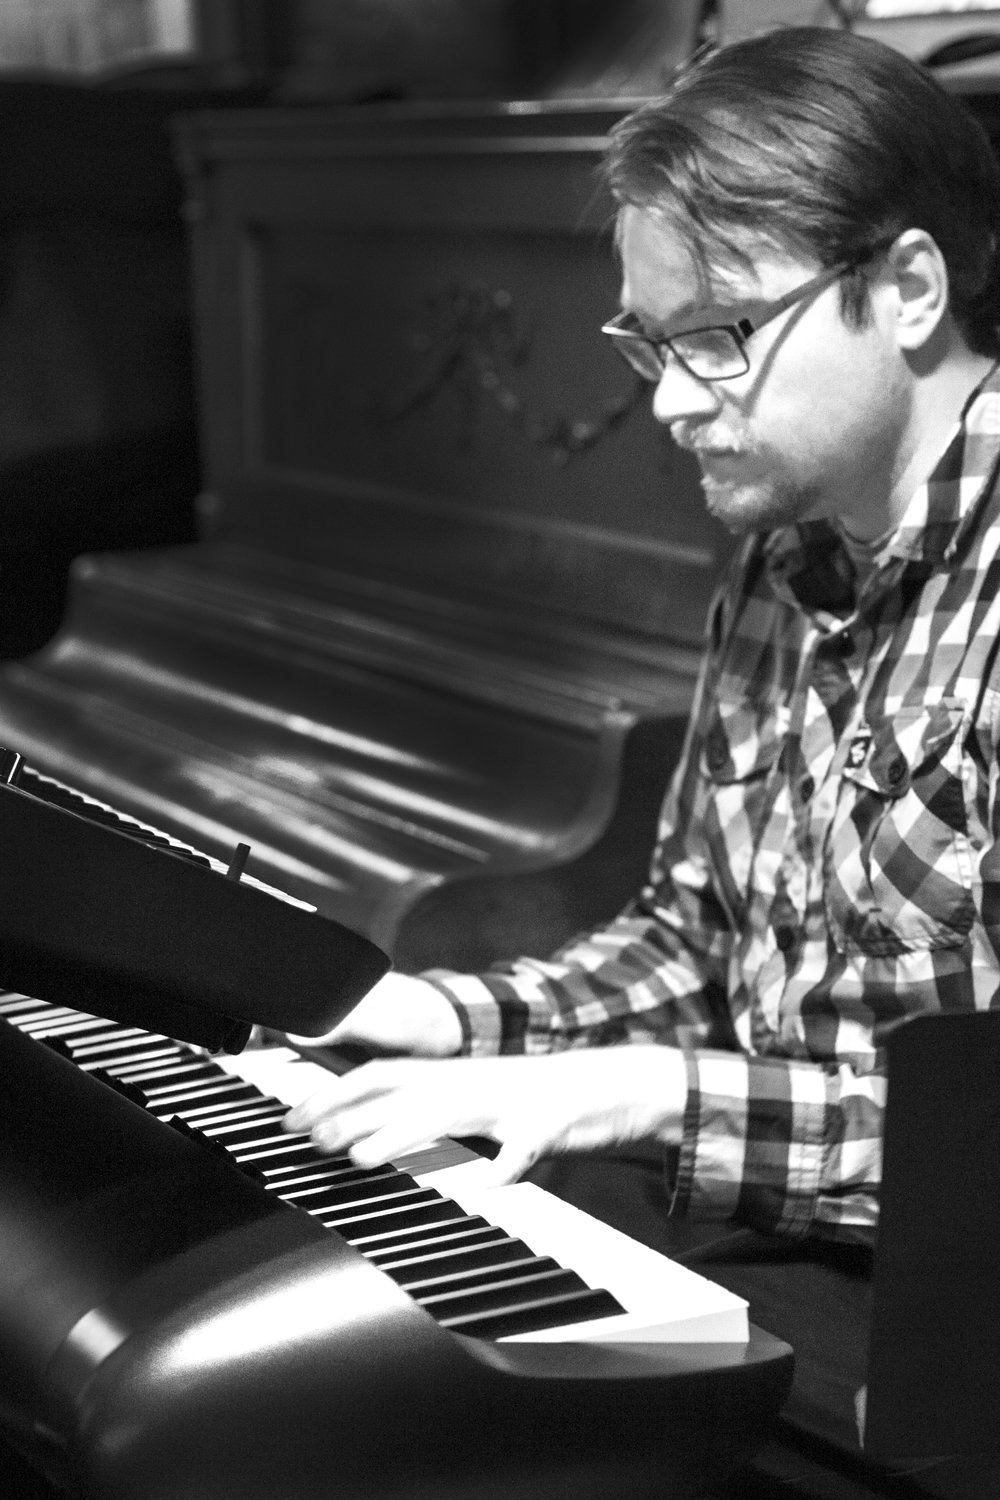 _DSC4852 VELOCITY at Bourbon Bar bw keyboard.jpg